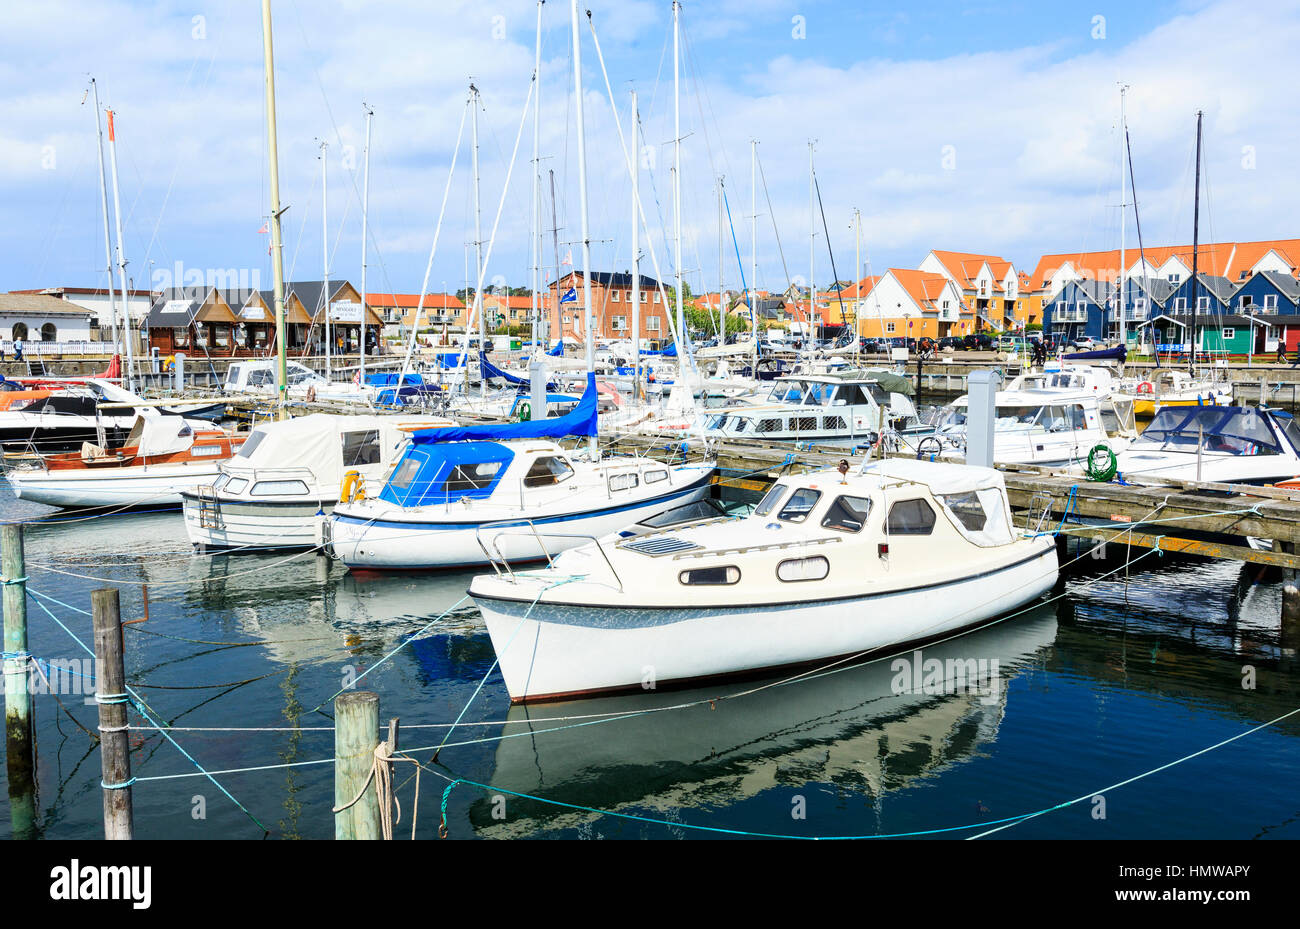 boats in the marina of Hundested, Denmark - Stock Image